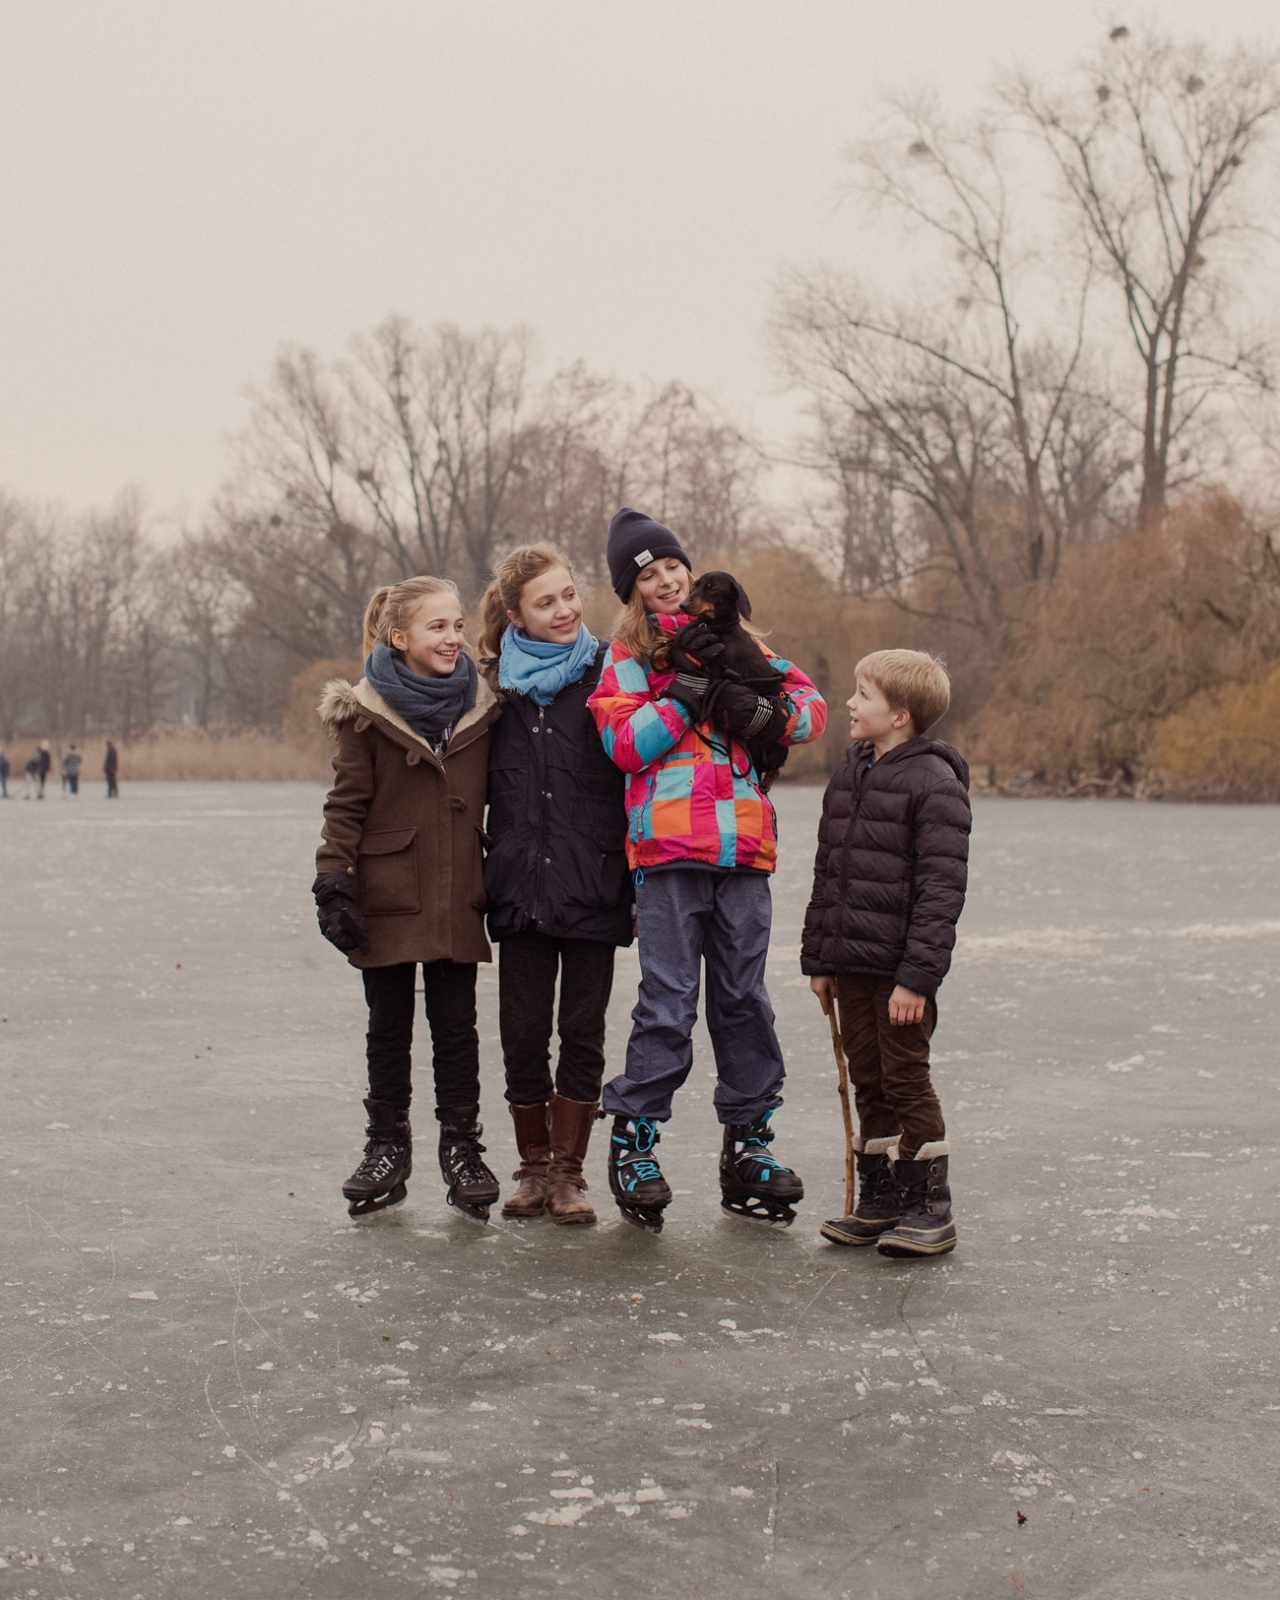 EVELYN DRAGAN  Ice Skaters